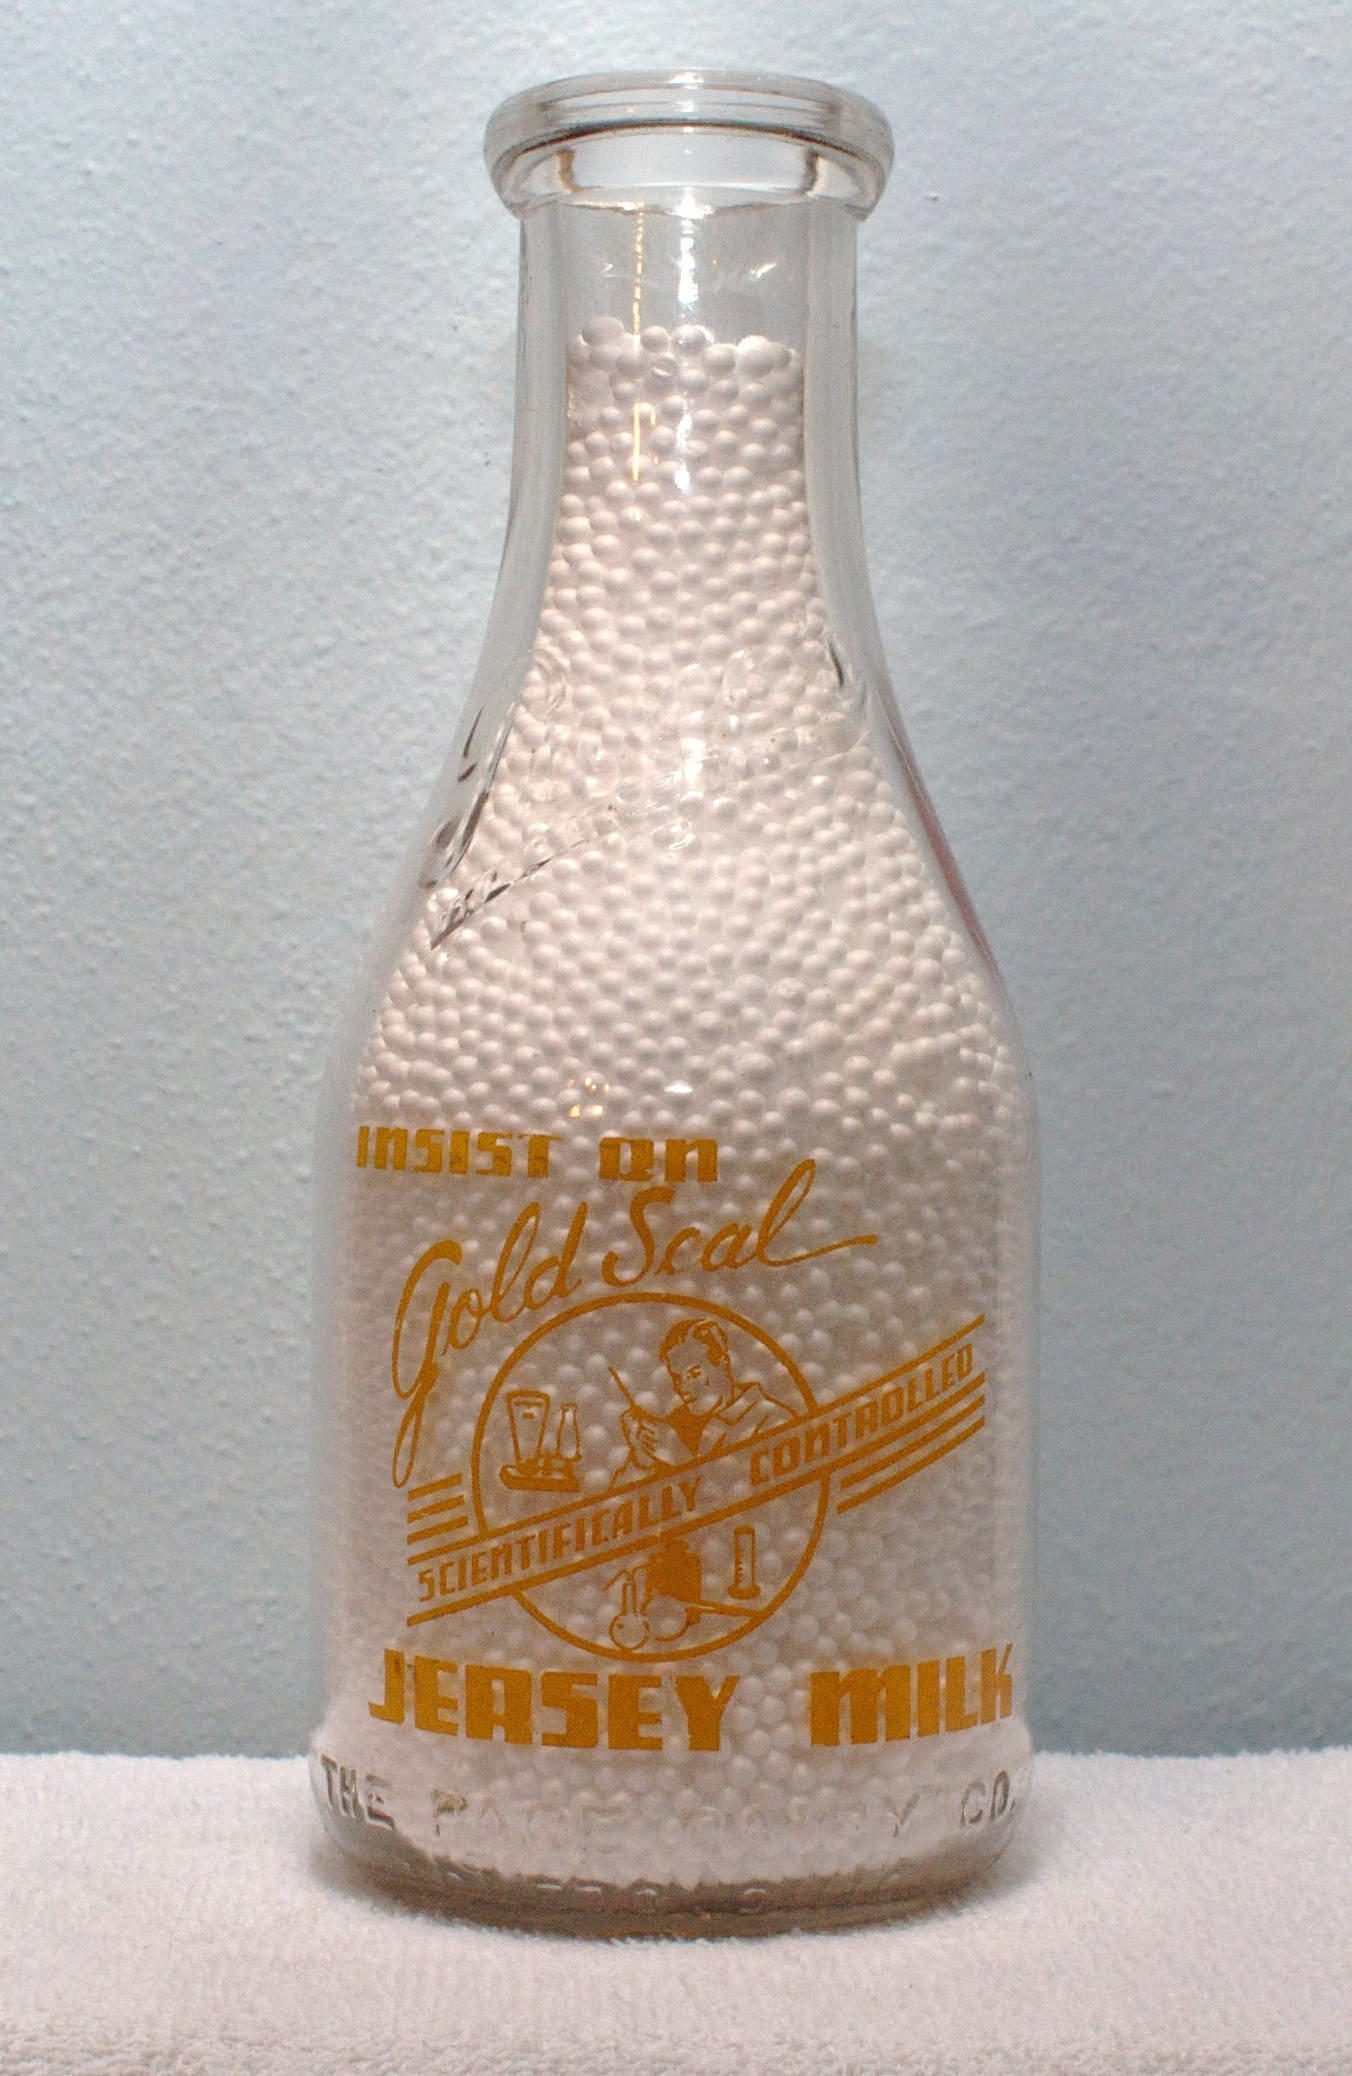 Limited Edition Pages Quart Milk Bottle 1940s Gold Seal Jersey Milk